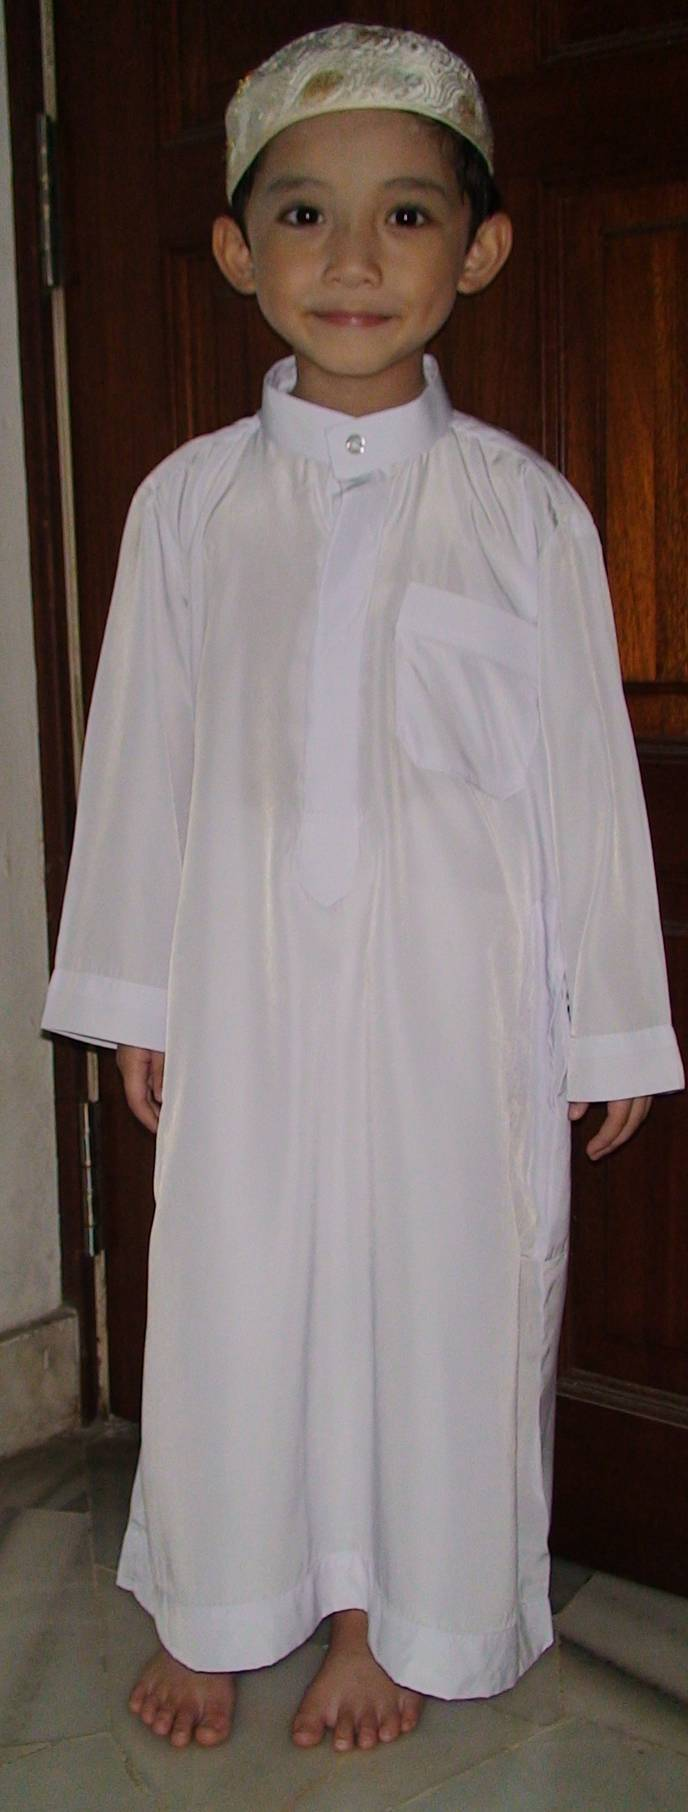 In my jubah getting ready to go to the Hadith class